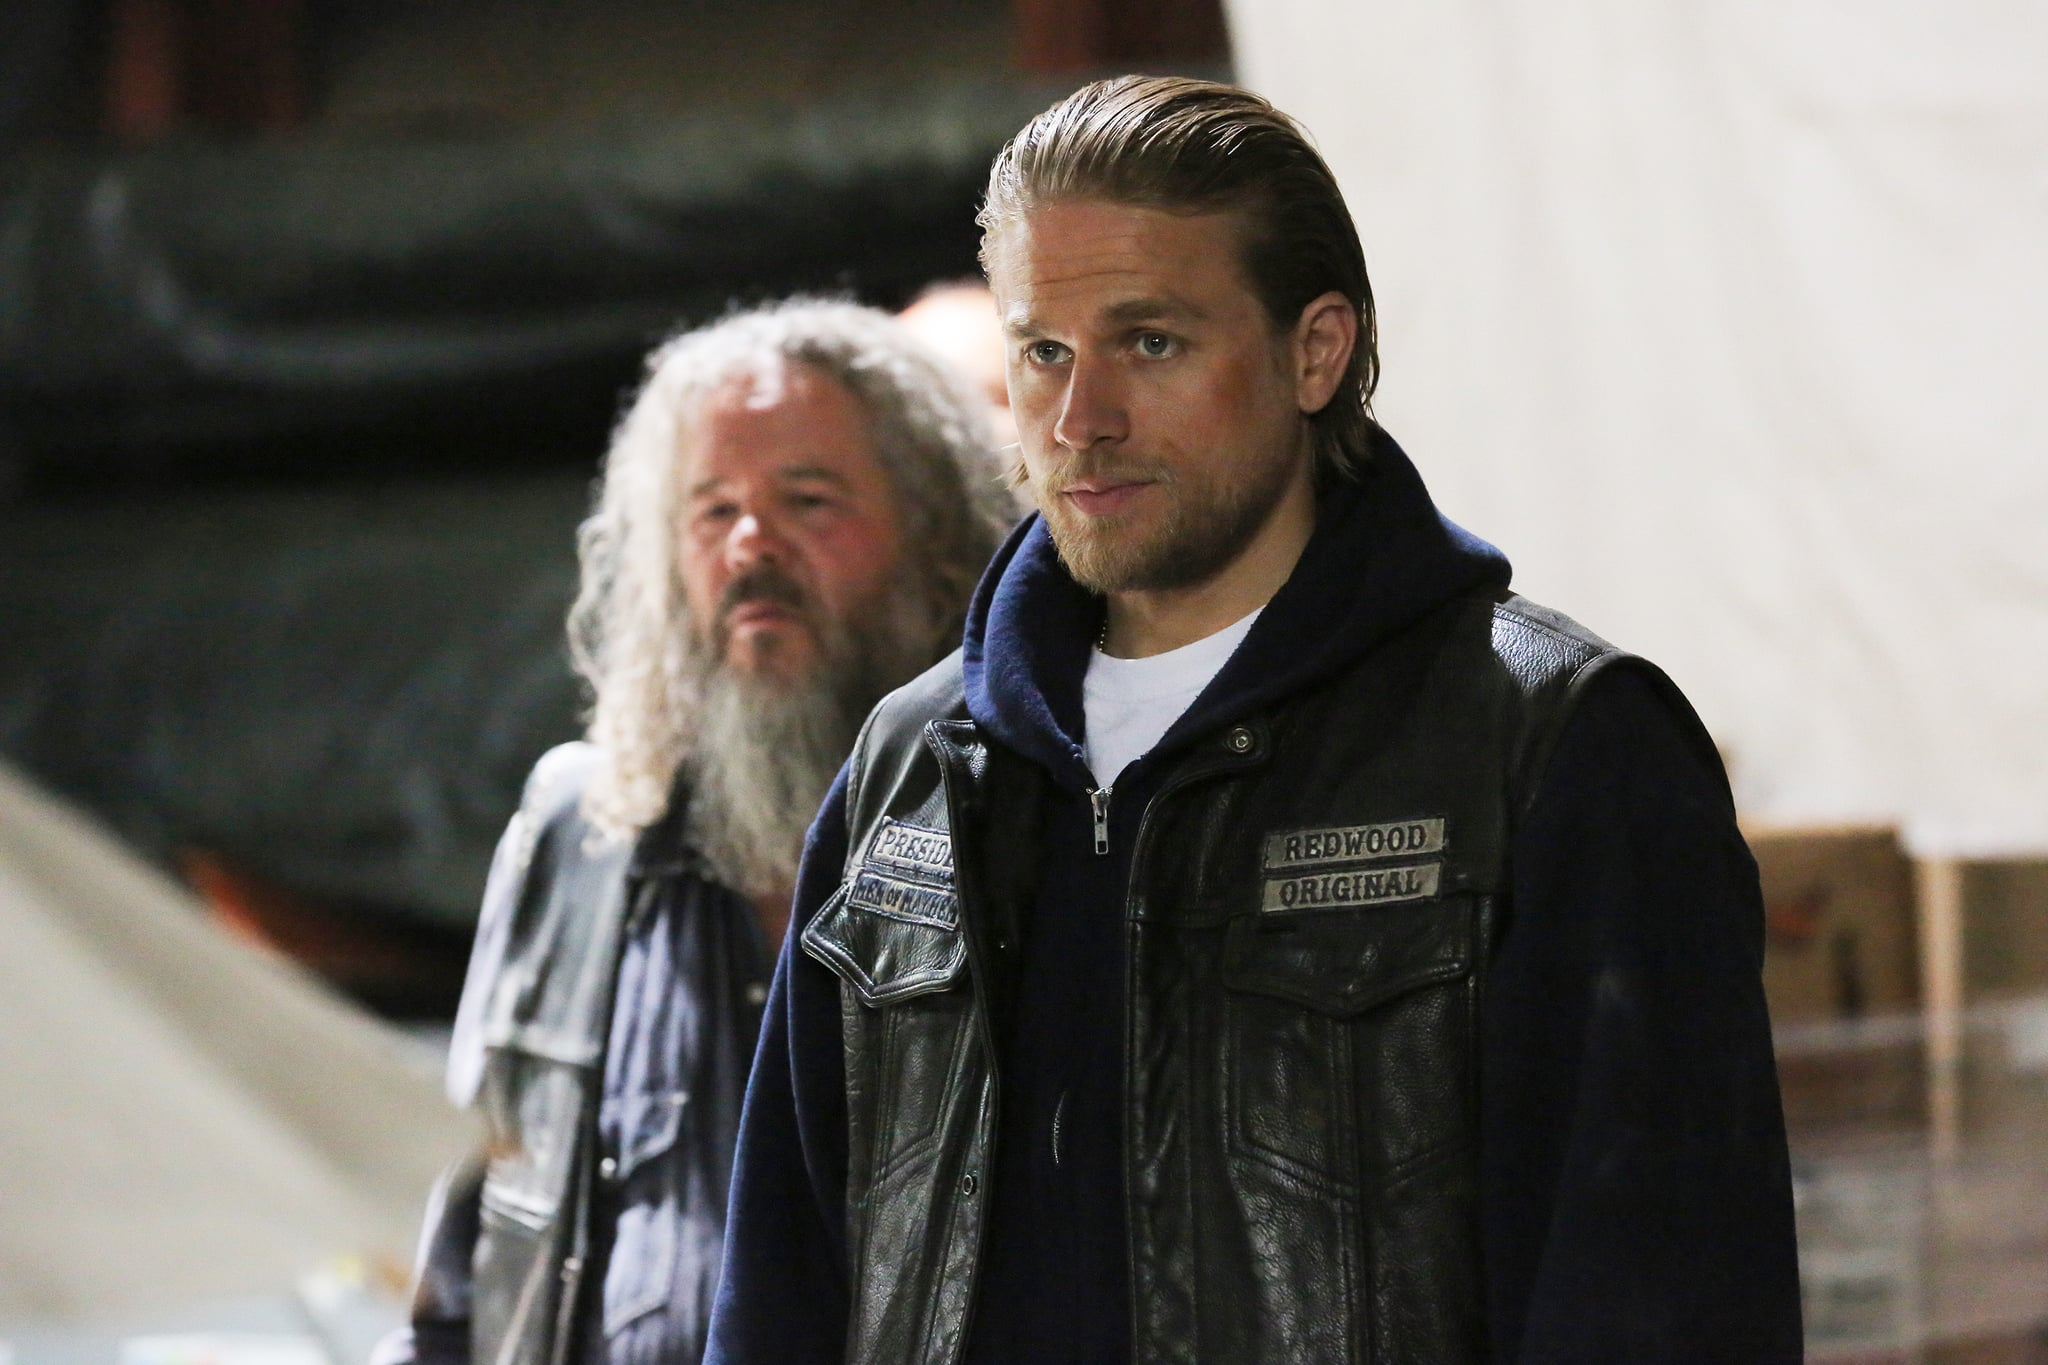 SONS OF ANARCHY, l-r: Mark Boone Junior, Charlie Hunnam in 'Smoke 'em If You Got 'em' (Season 7, Episode 6, aired October 17, 2014). ph: Prashant Gupta/FX/courtesy Everett Collection